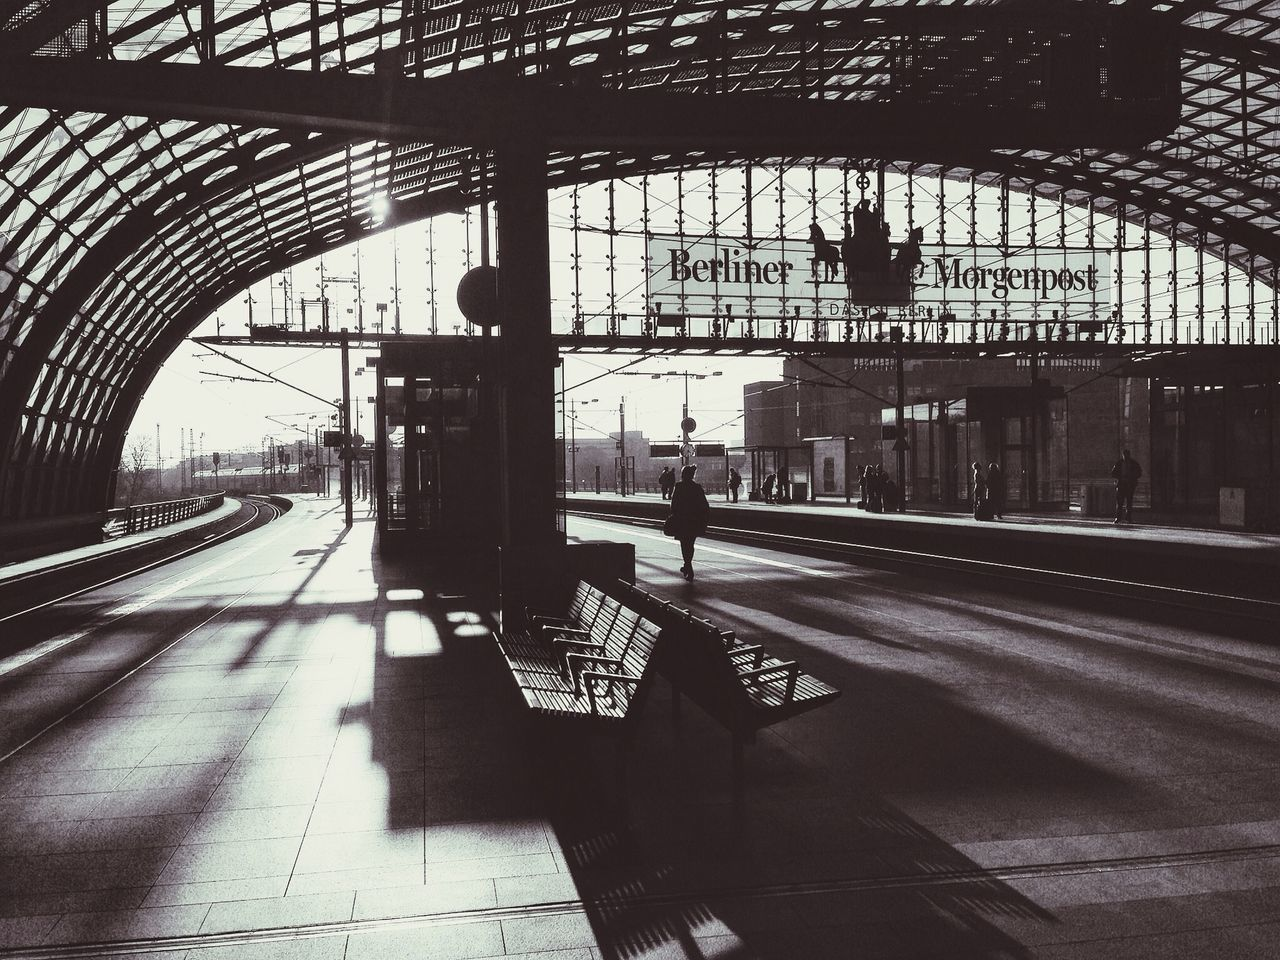 railroad station, transportation, railroad station platform, public transportation, architecture, rail transportation, built structure, indoors, travel, day, shadow, sunlight, real people, full length, city, one person, people